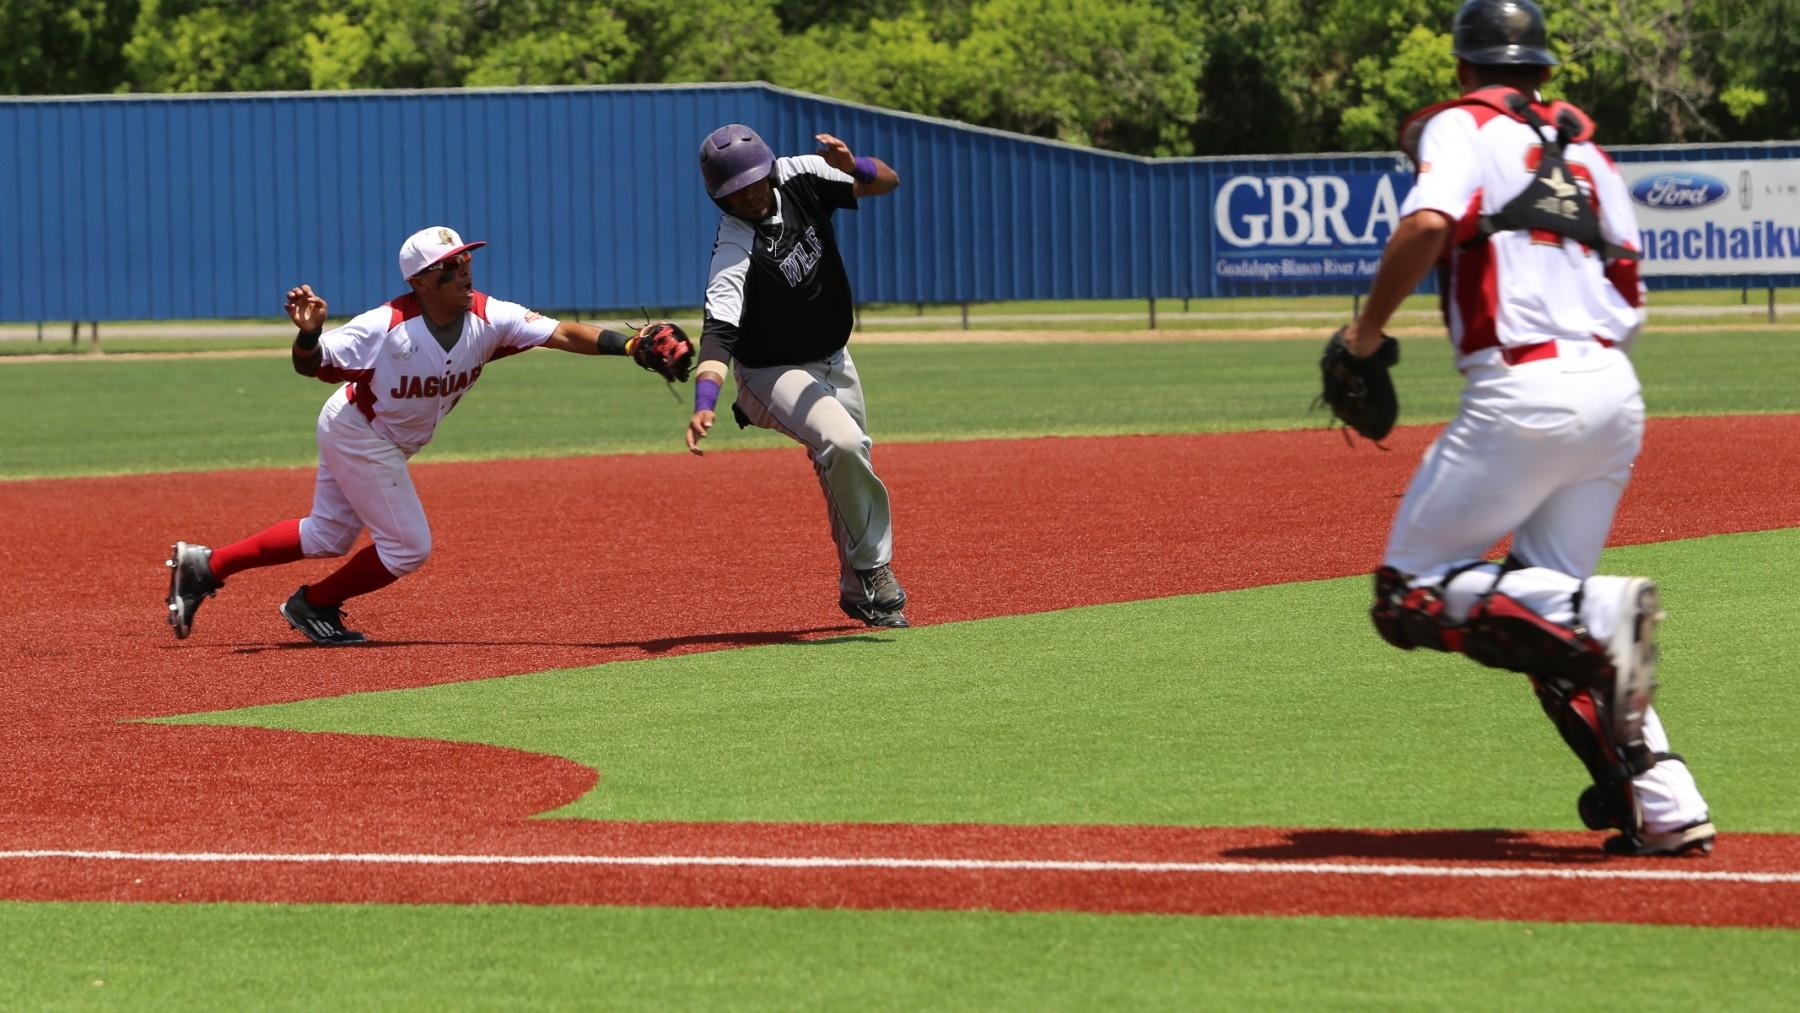 UHV's Jonathan Banuelos tags out a Wiley runner during a rundown Friday.